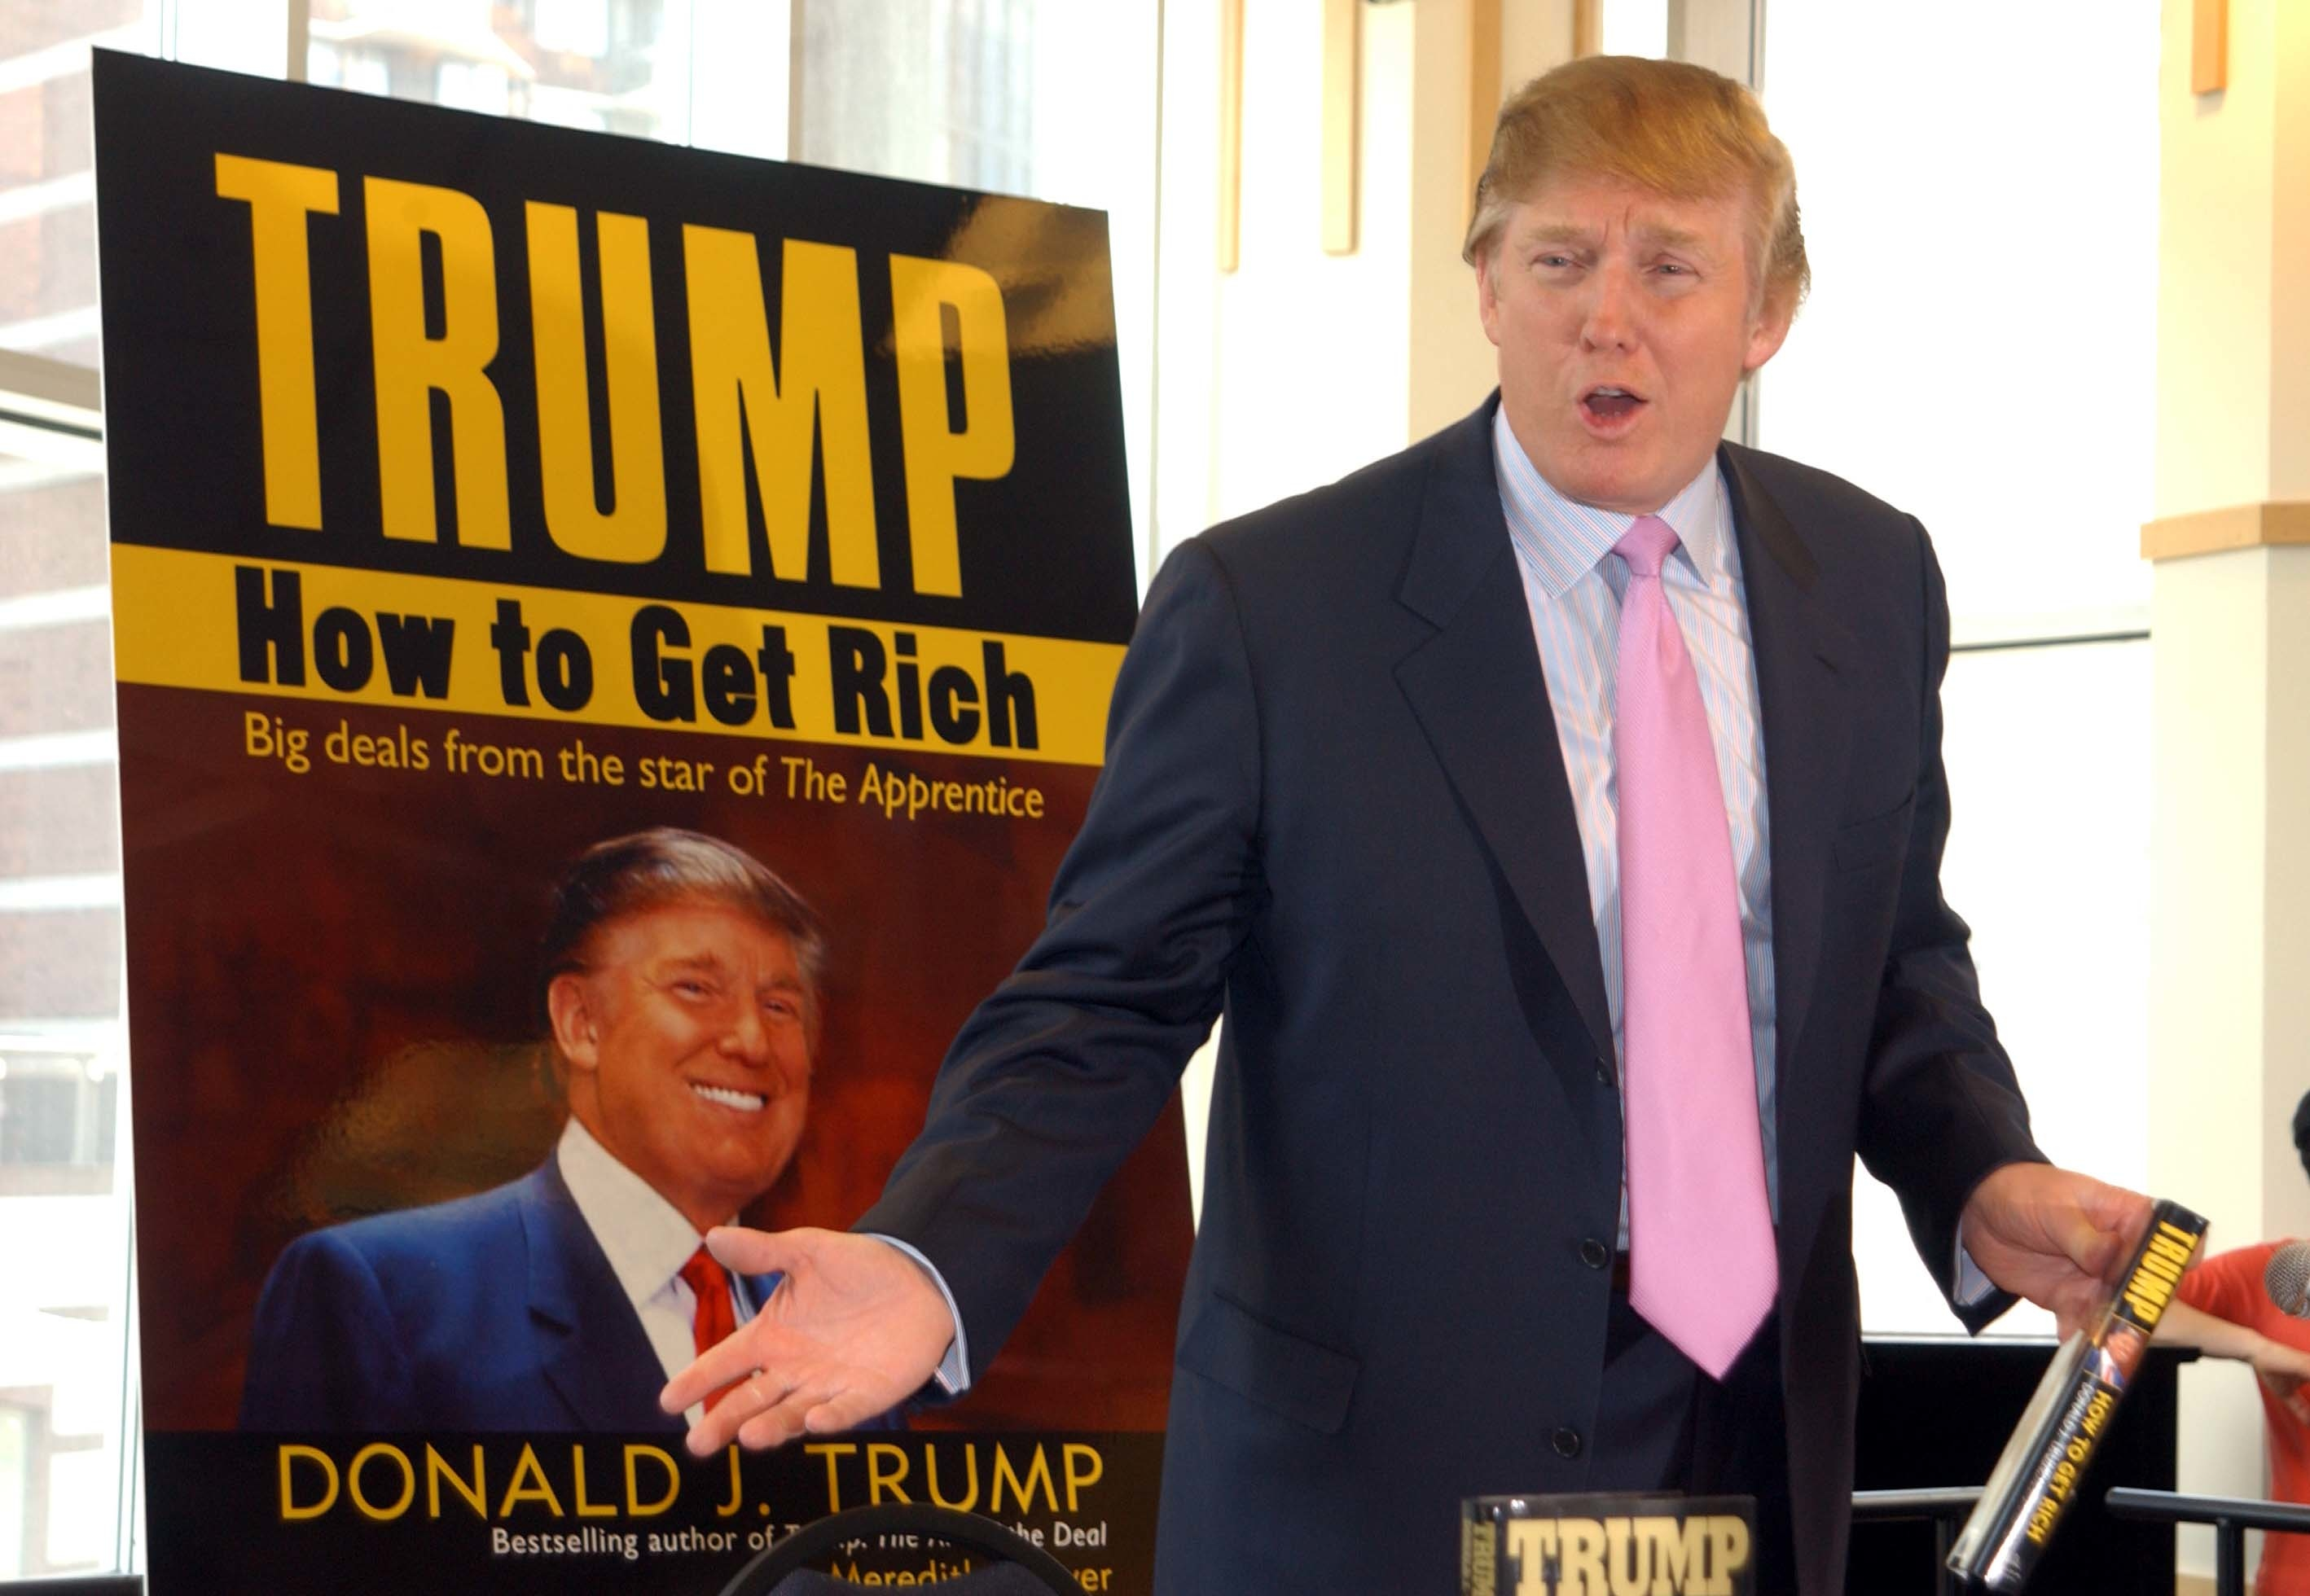 Donald Trump Book Signing